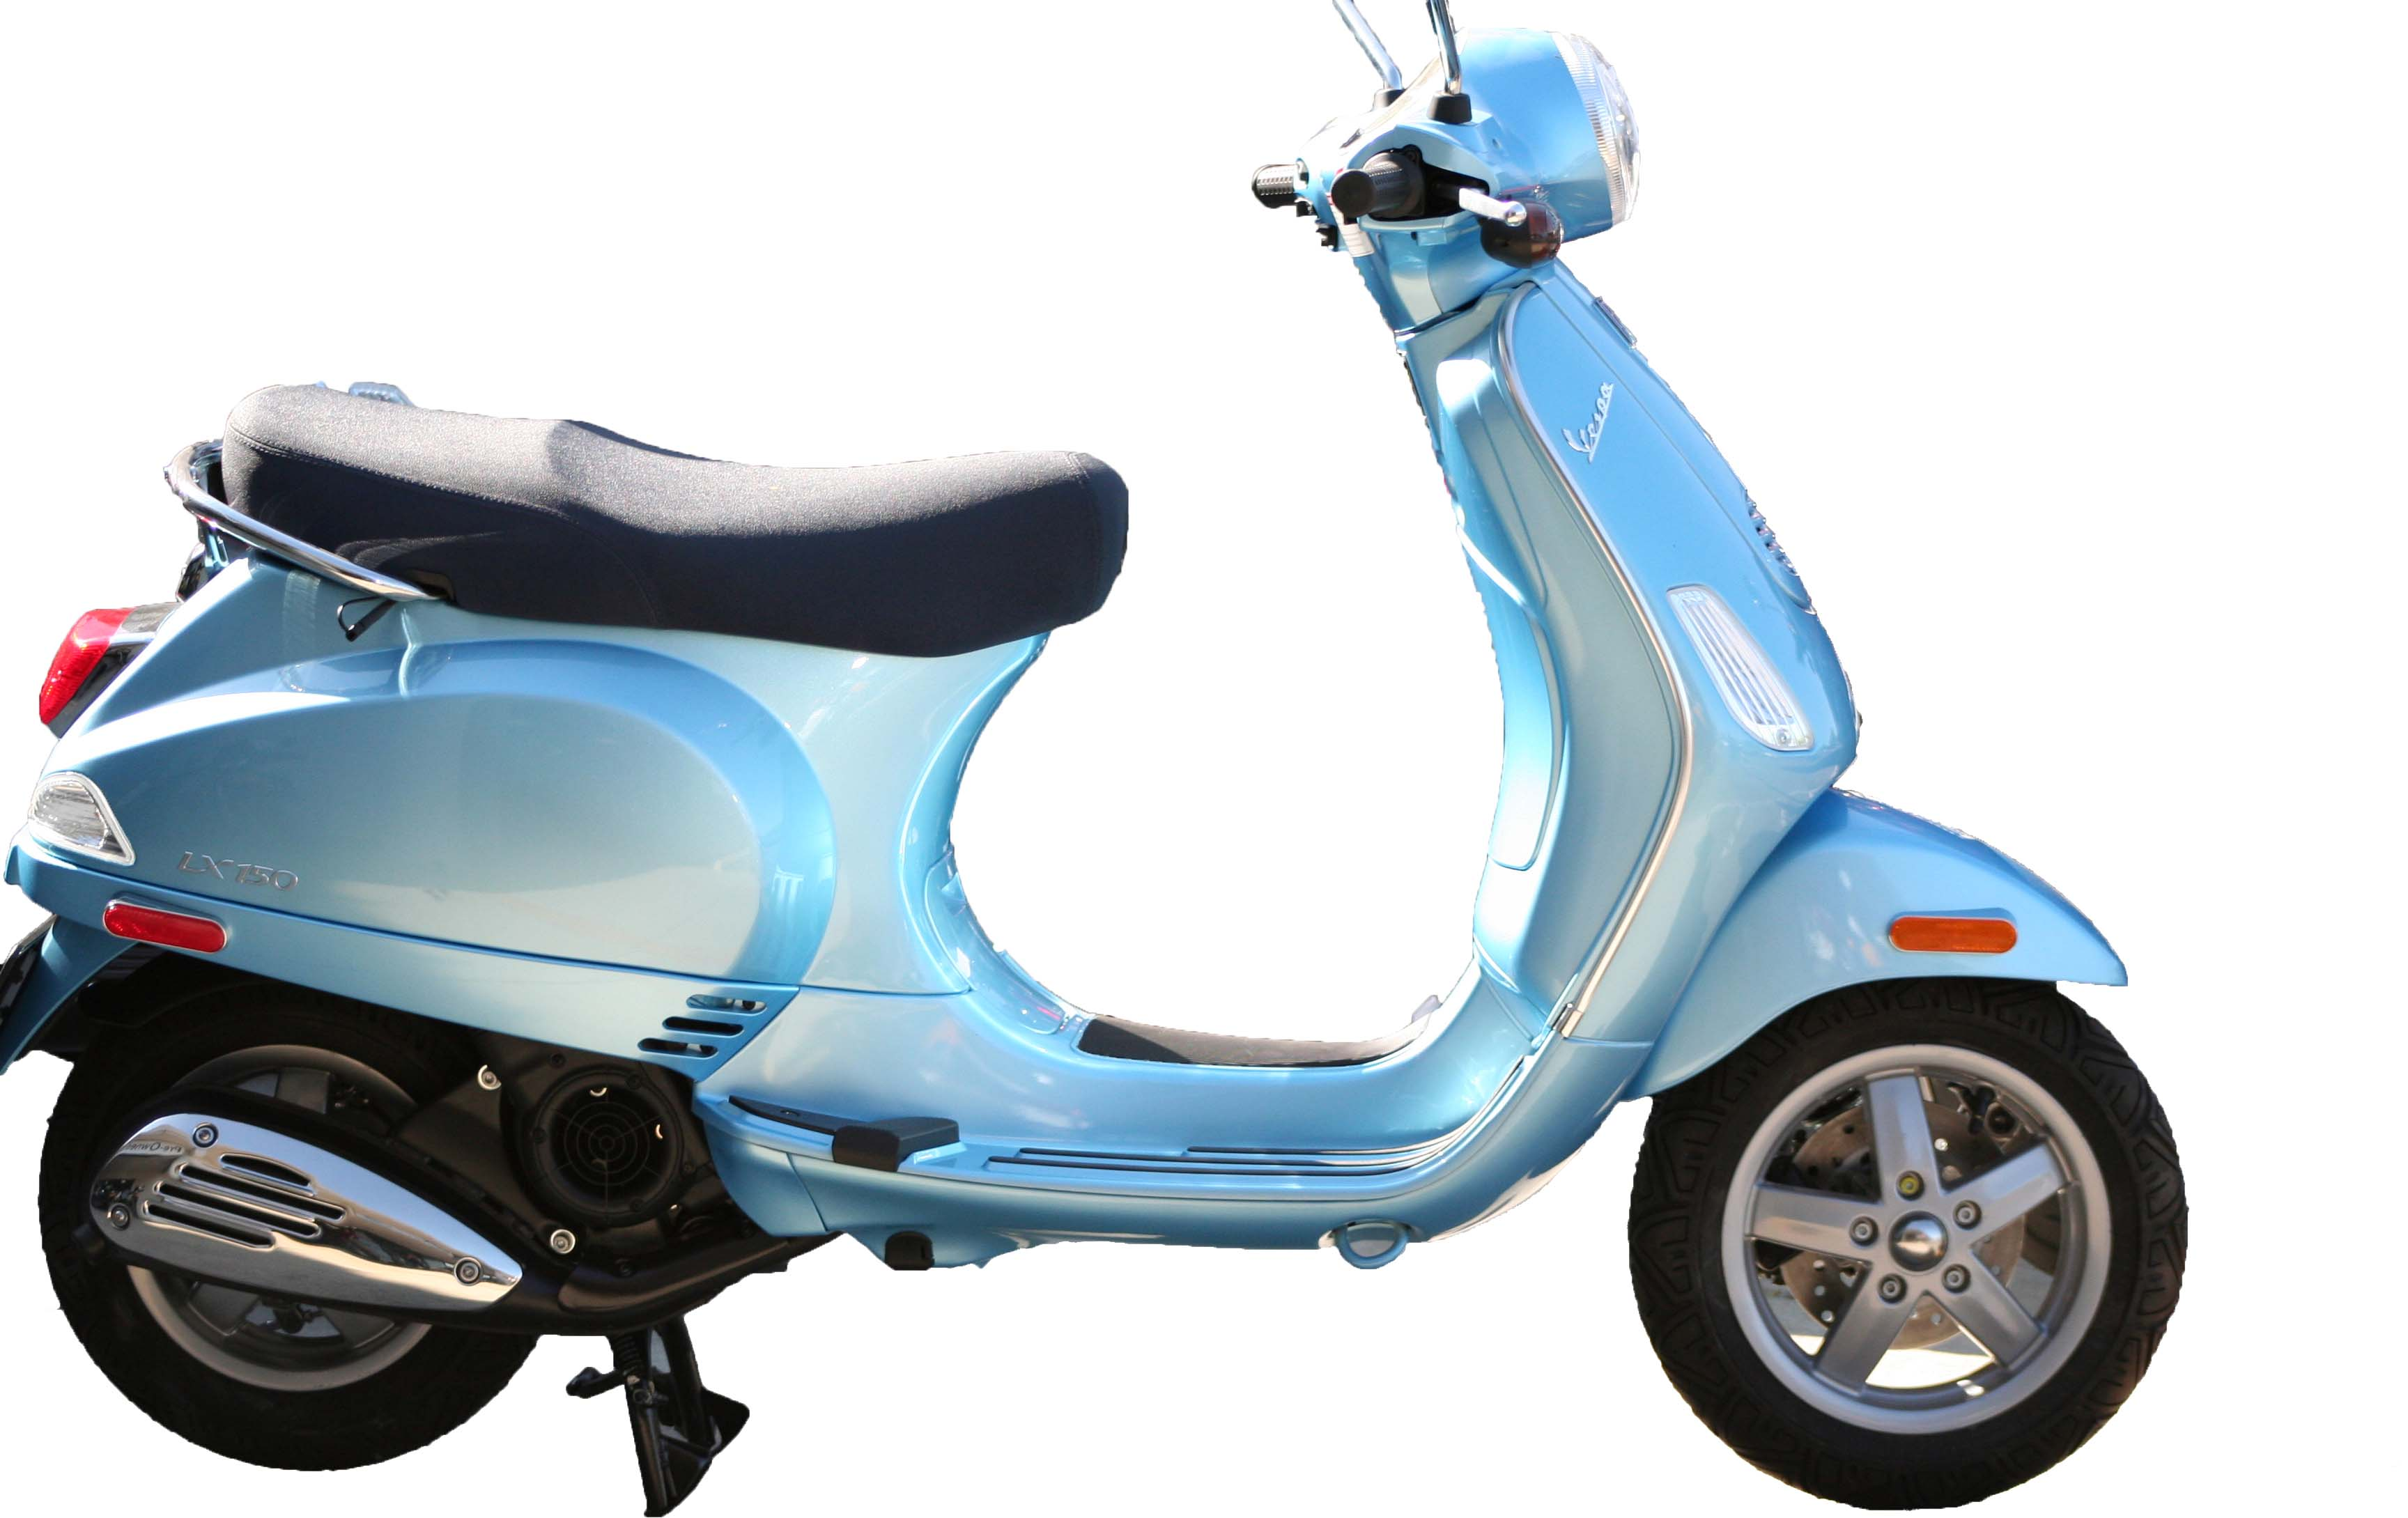 Moped Scooters Vespa